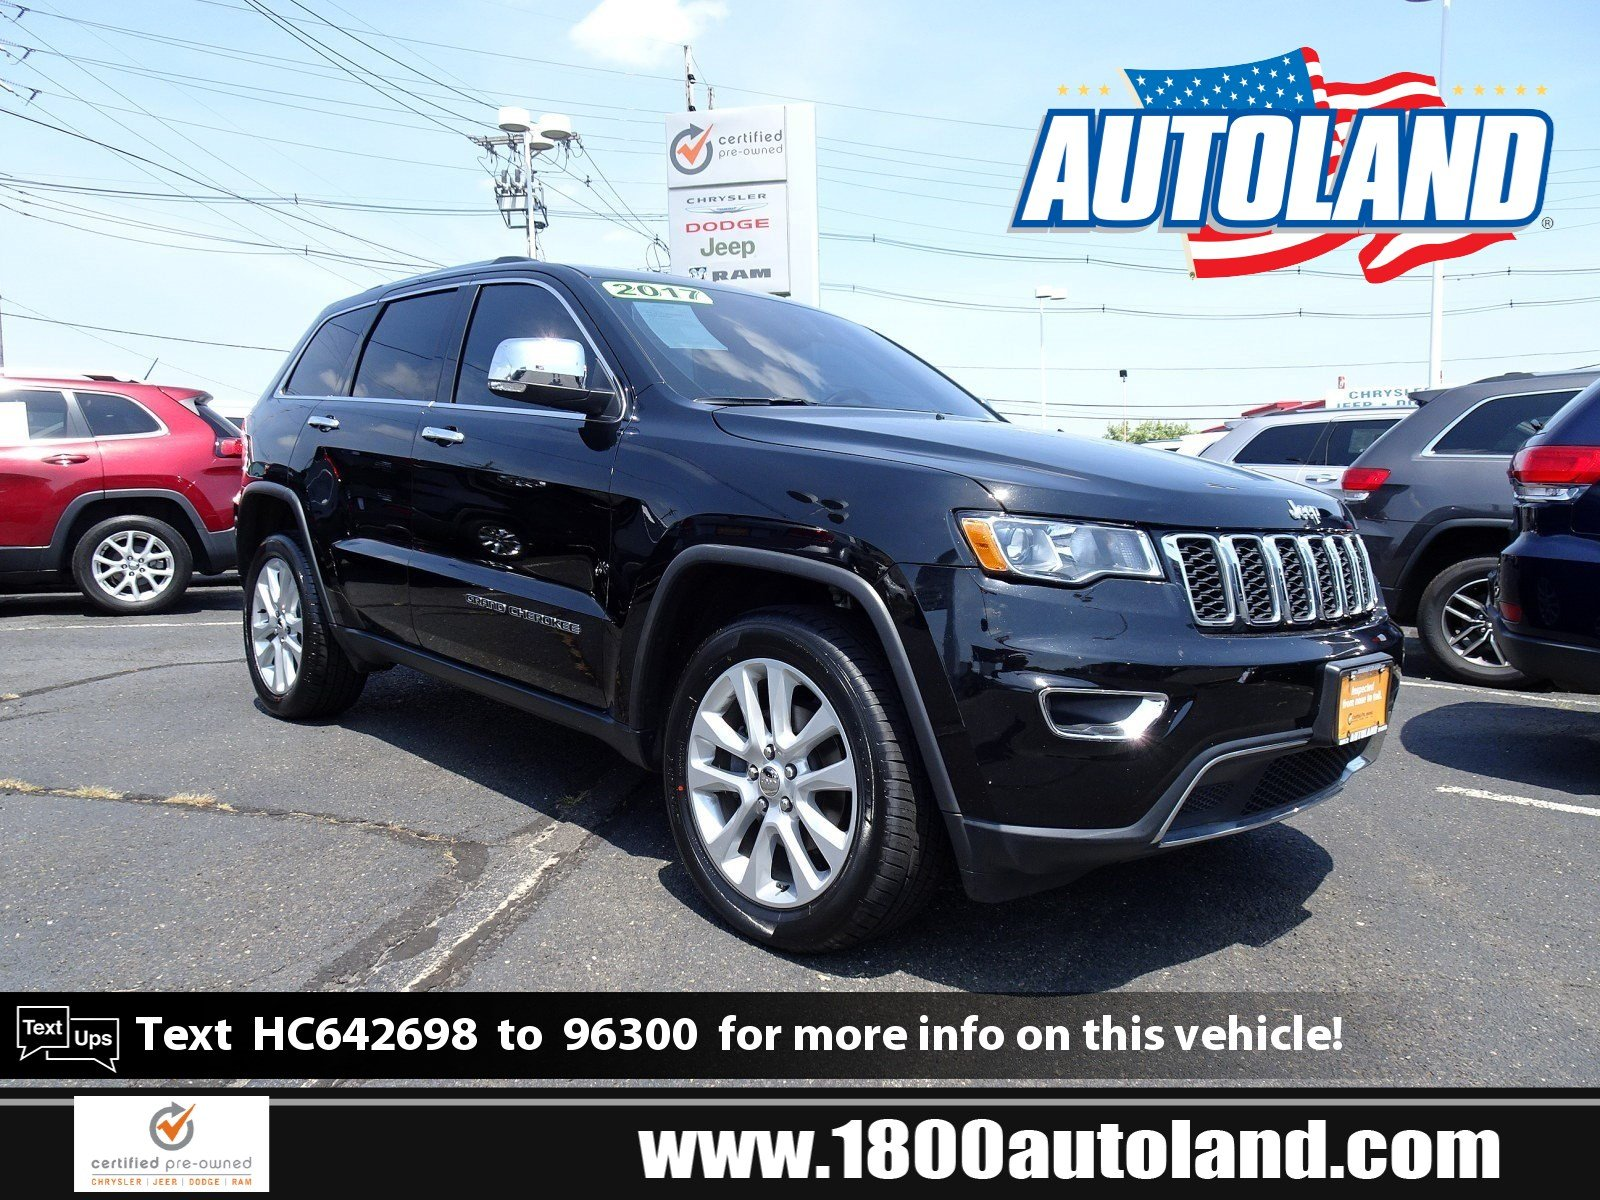 2004 Jeep Grand Cherokee Security System